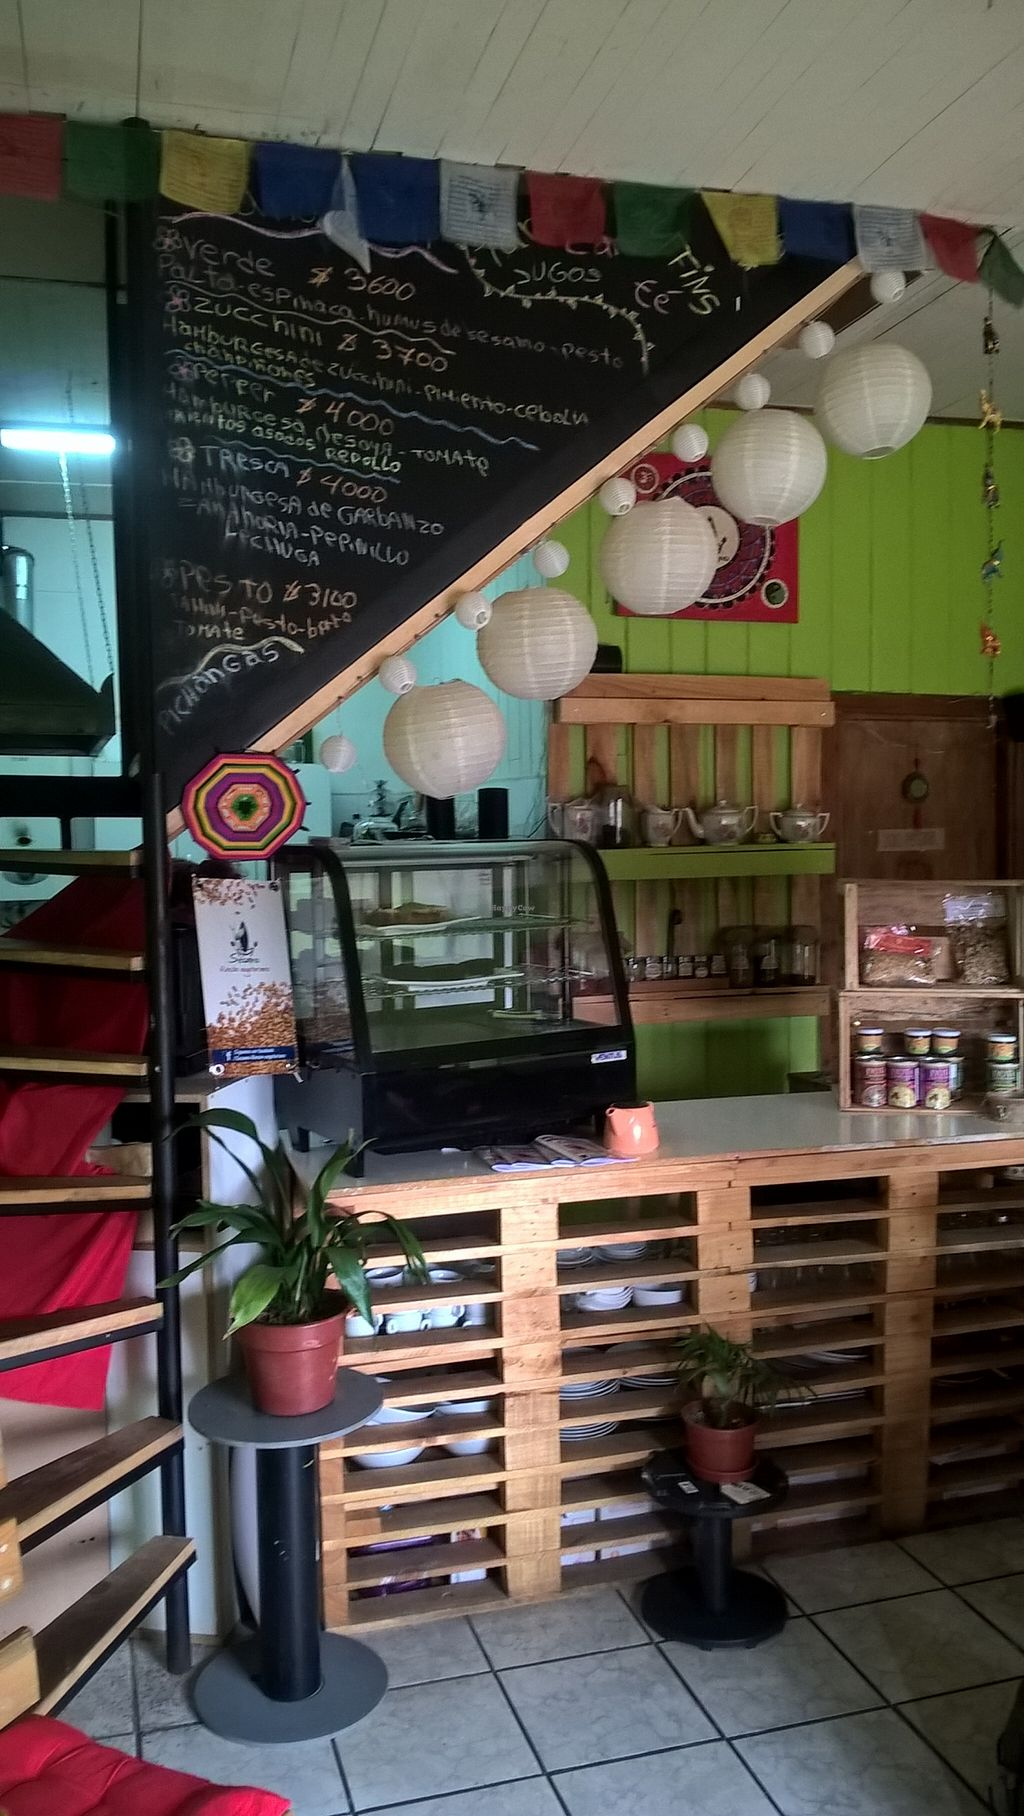 """Photo of CLOSED: Sesamo Rincon Vegetariano  by <a href=""""/members/profile/arya00"""">arya00</a> <br/>that's what it looks like inside <br/> November 27, 2015  - <a href='/contact/abuse/image/62905/126281'>Report</a>"""